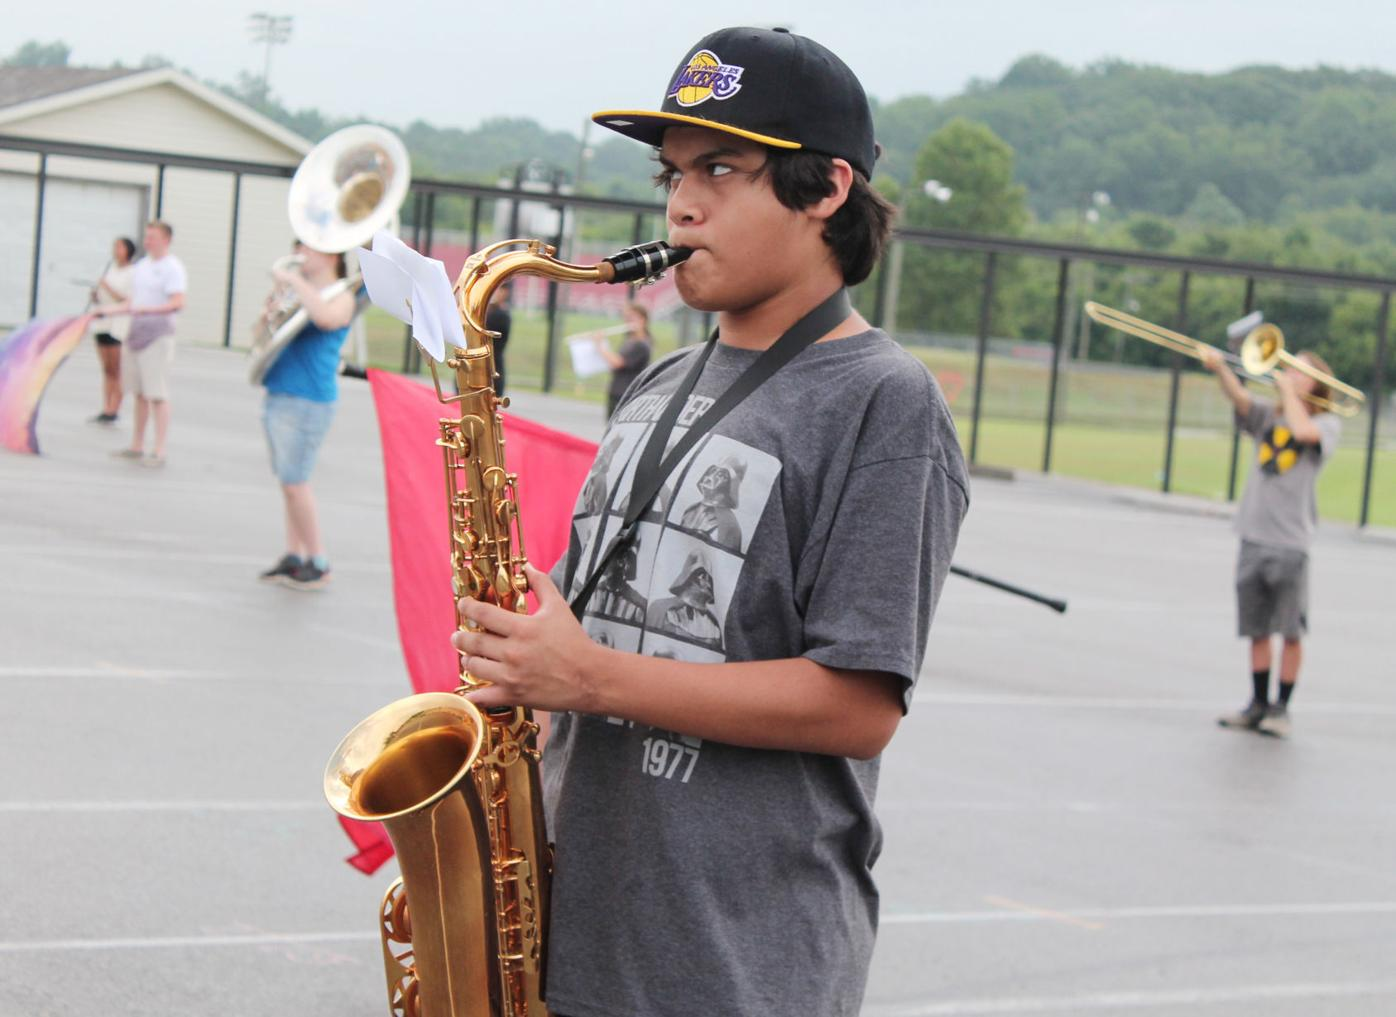 School bands gear up for year